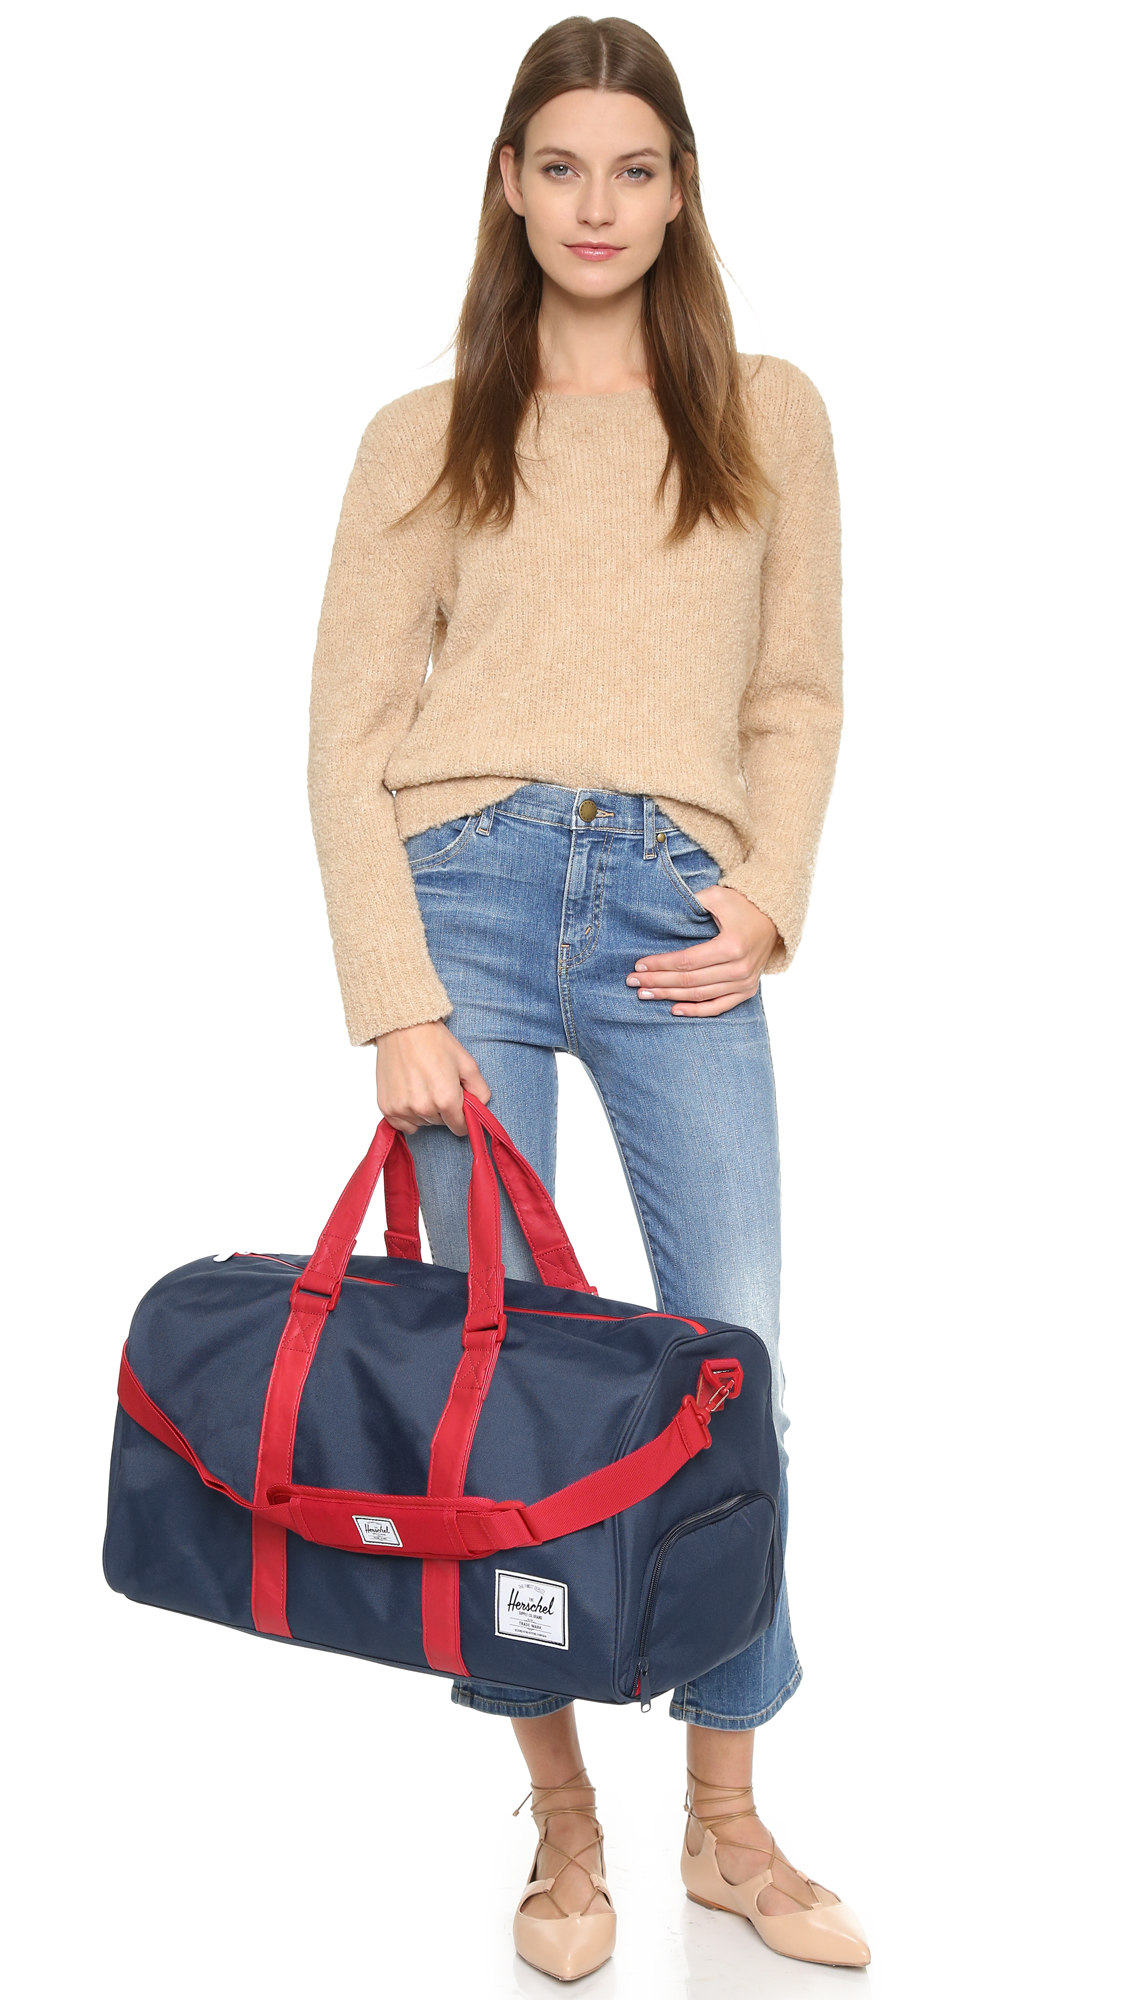 62655d9542 Lyst - Herschel Supply Co. Novel Weekender - Navy red in Blue